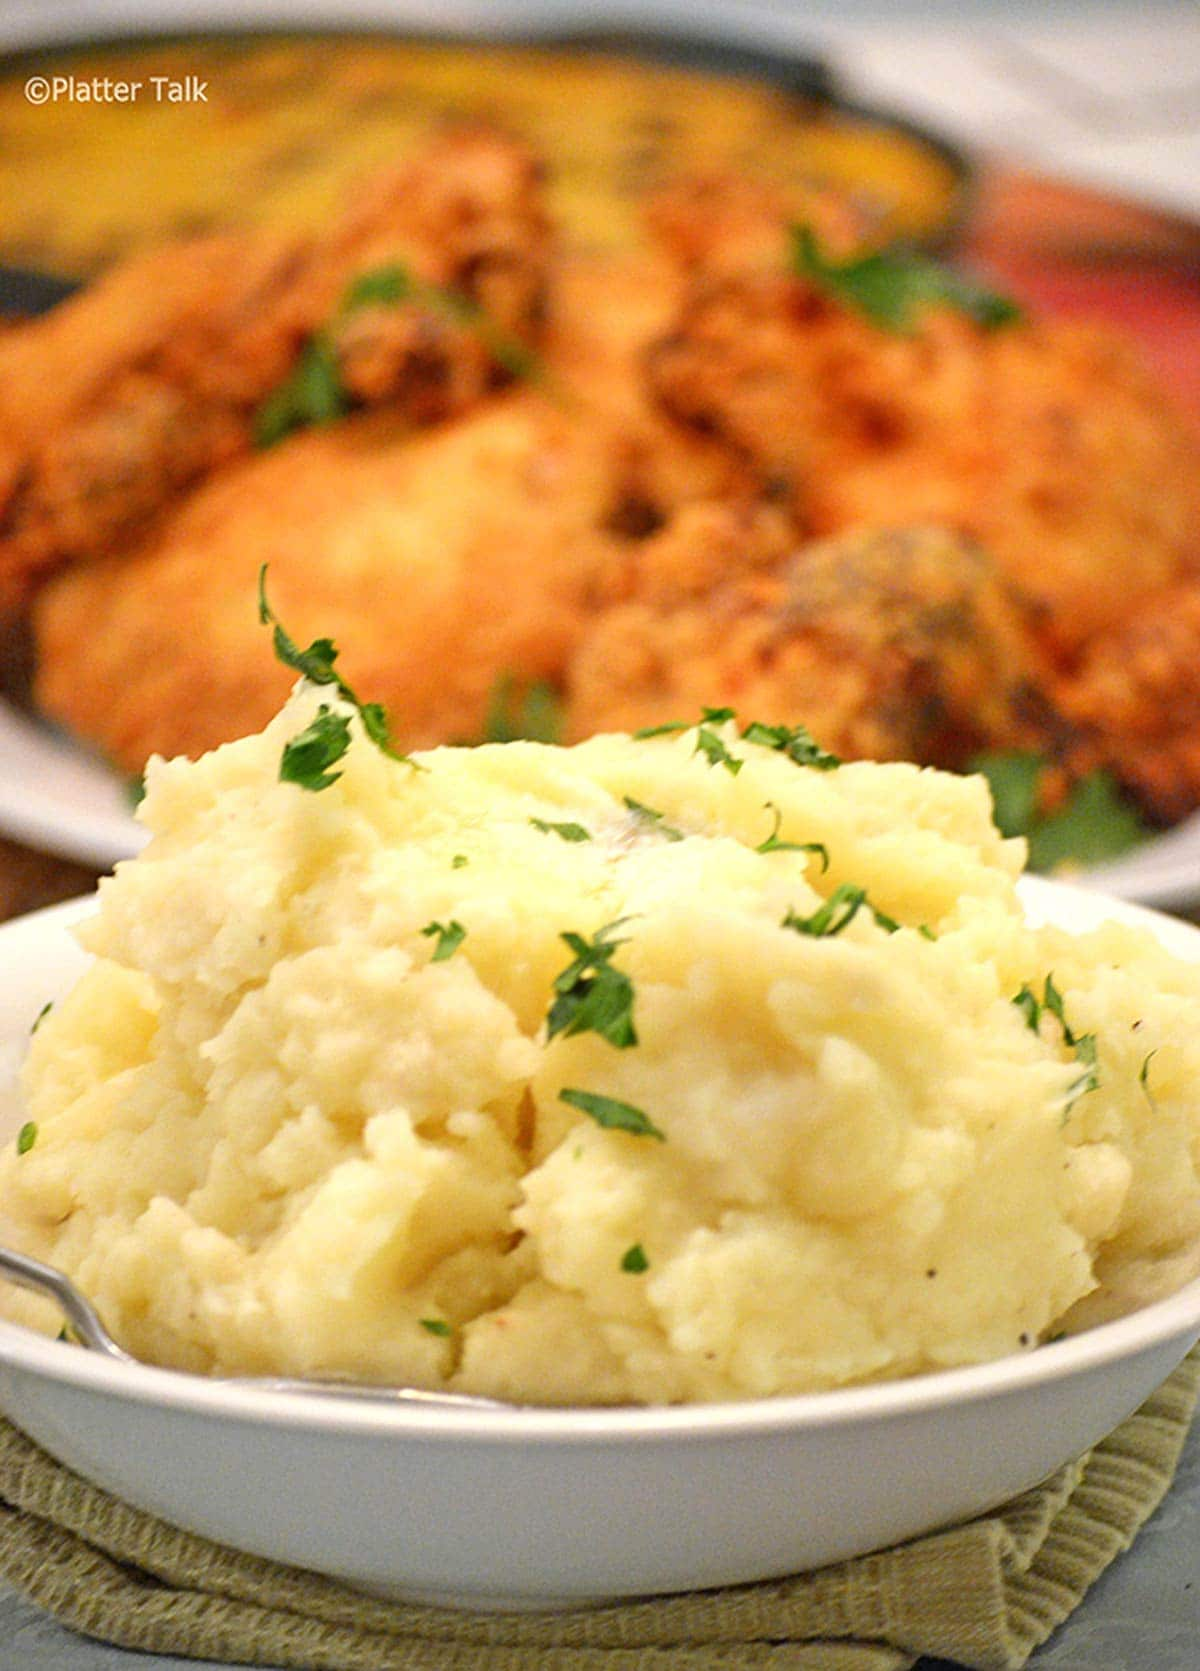 A bowl of mashed potatoes on a table with fried chicken in background.